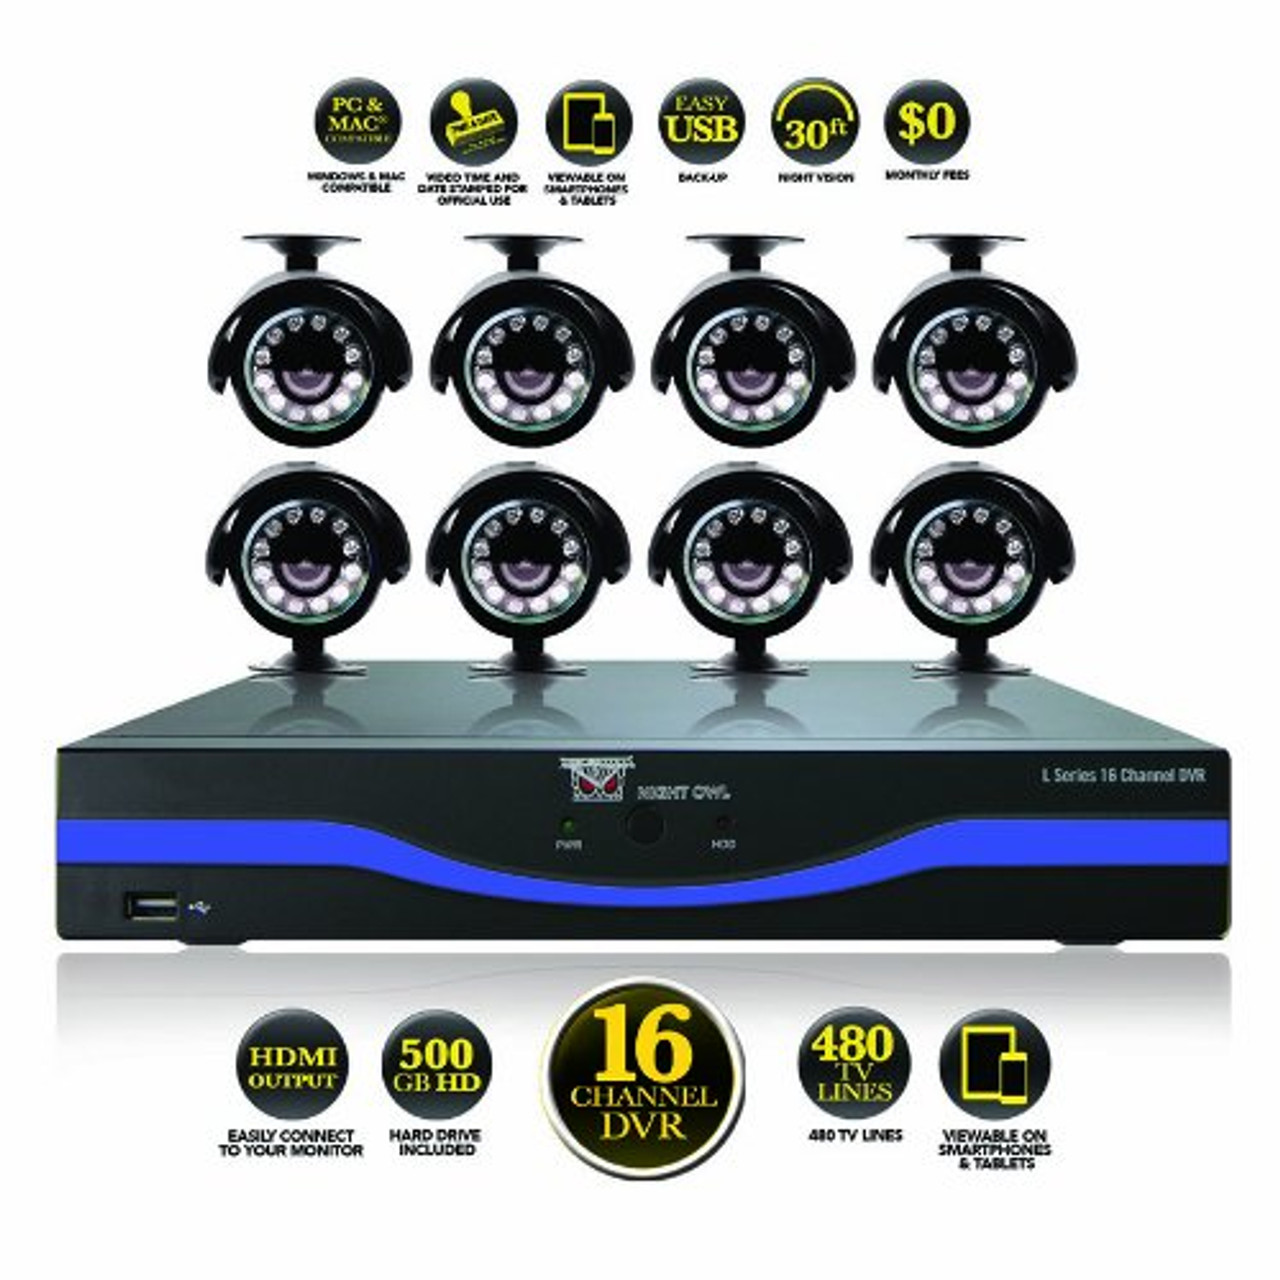 Night Owl Security L-165-8511-R 16 Channel DVR with 500GB HDD HDMI Output 8  Night Vision Cameras and Free Night Owl Lite App - Refurbished